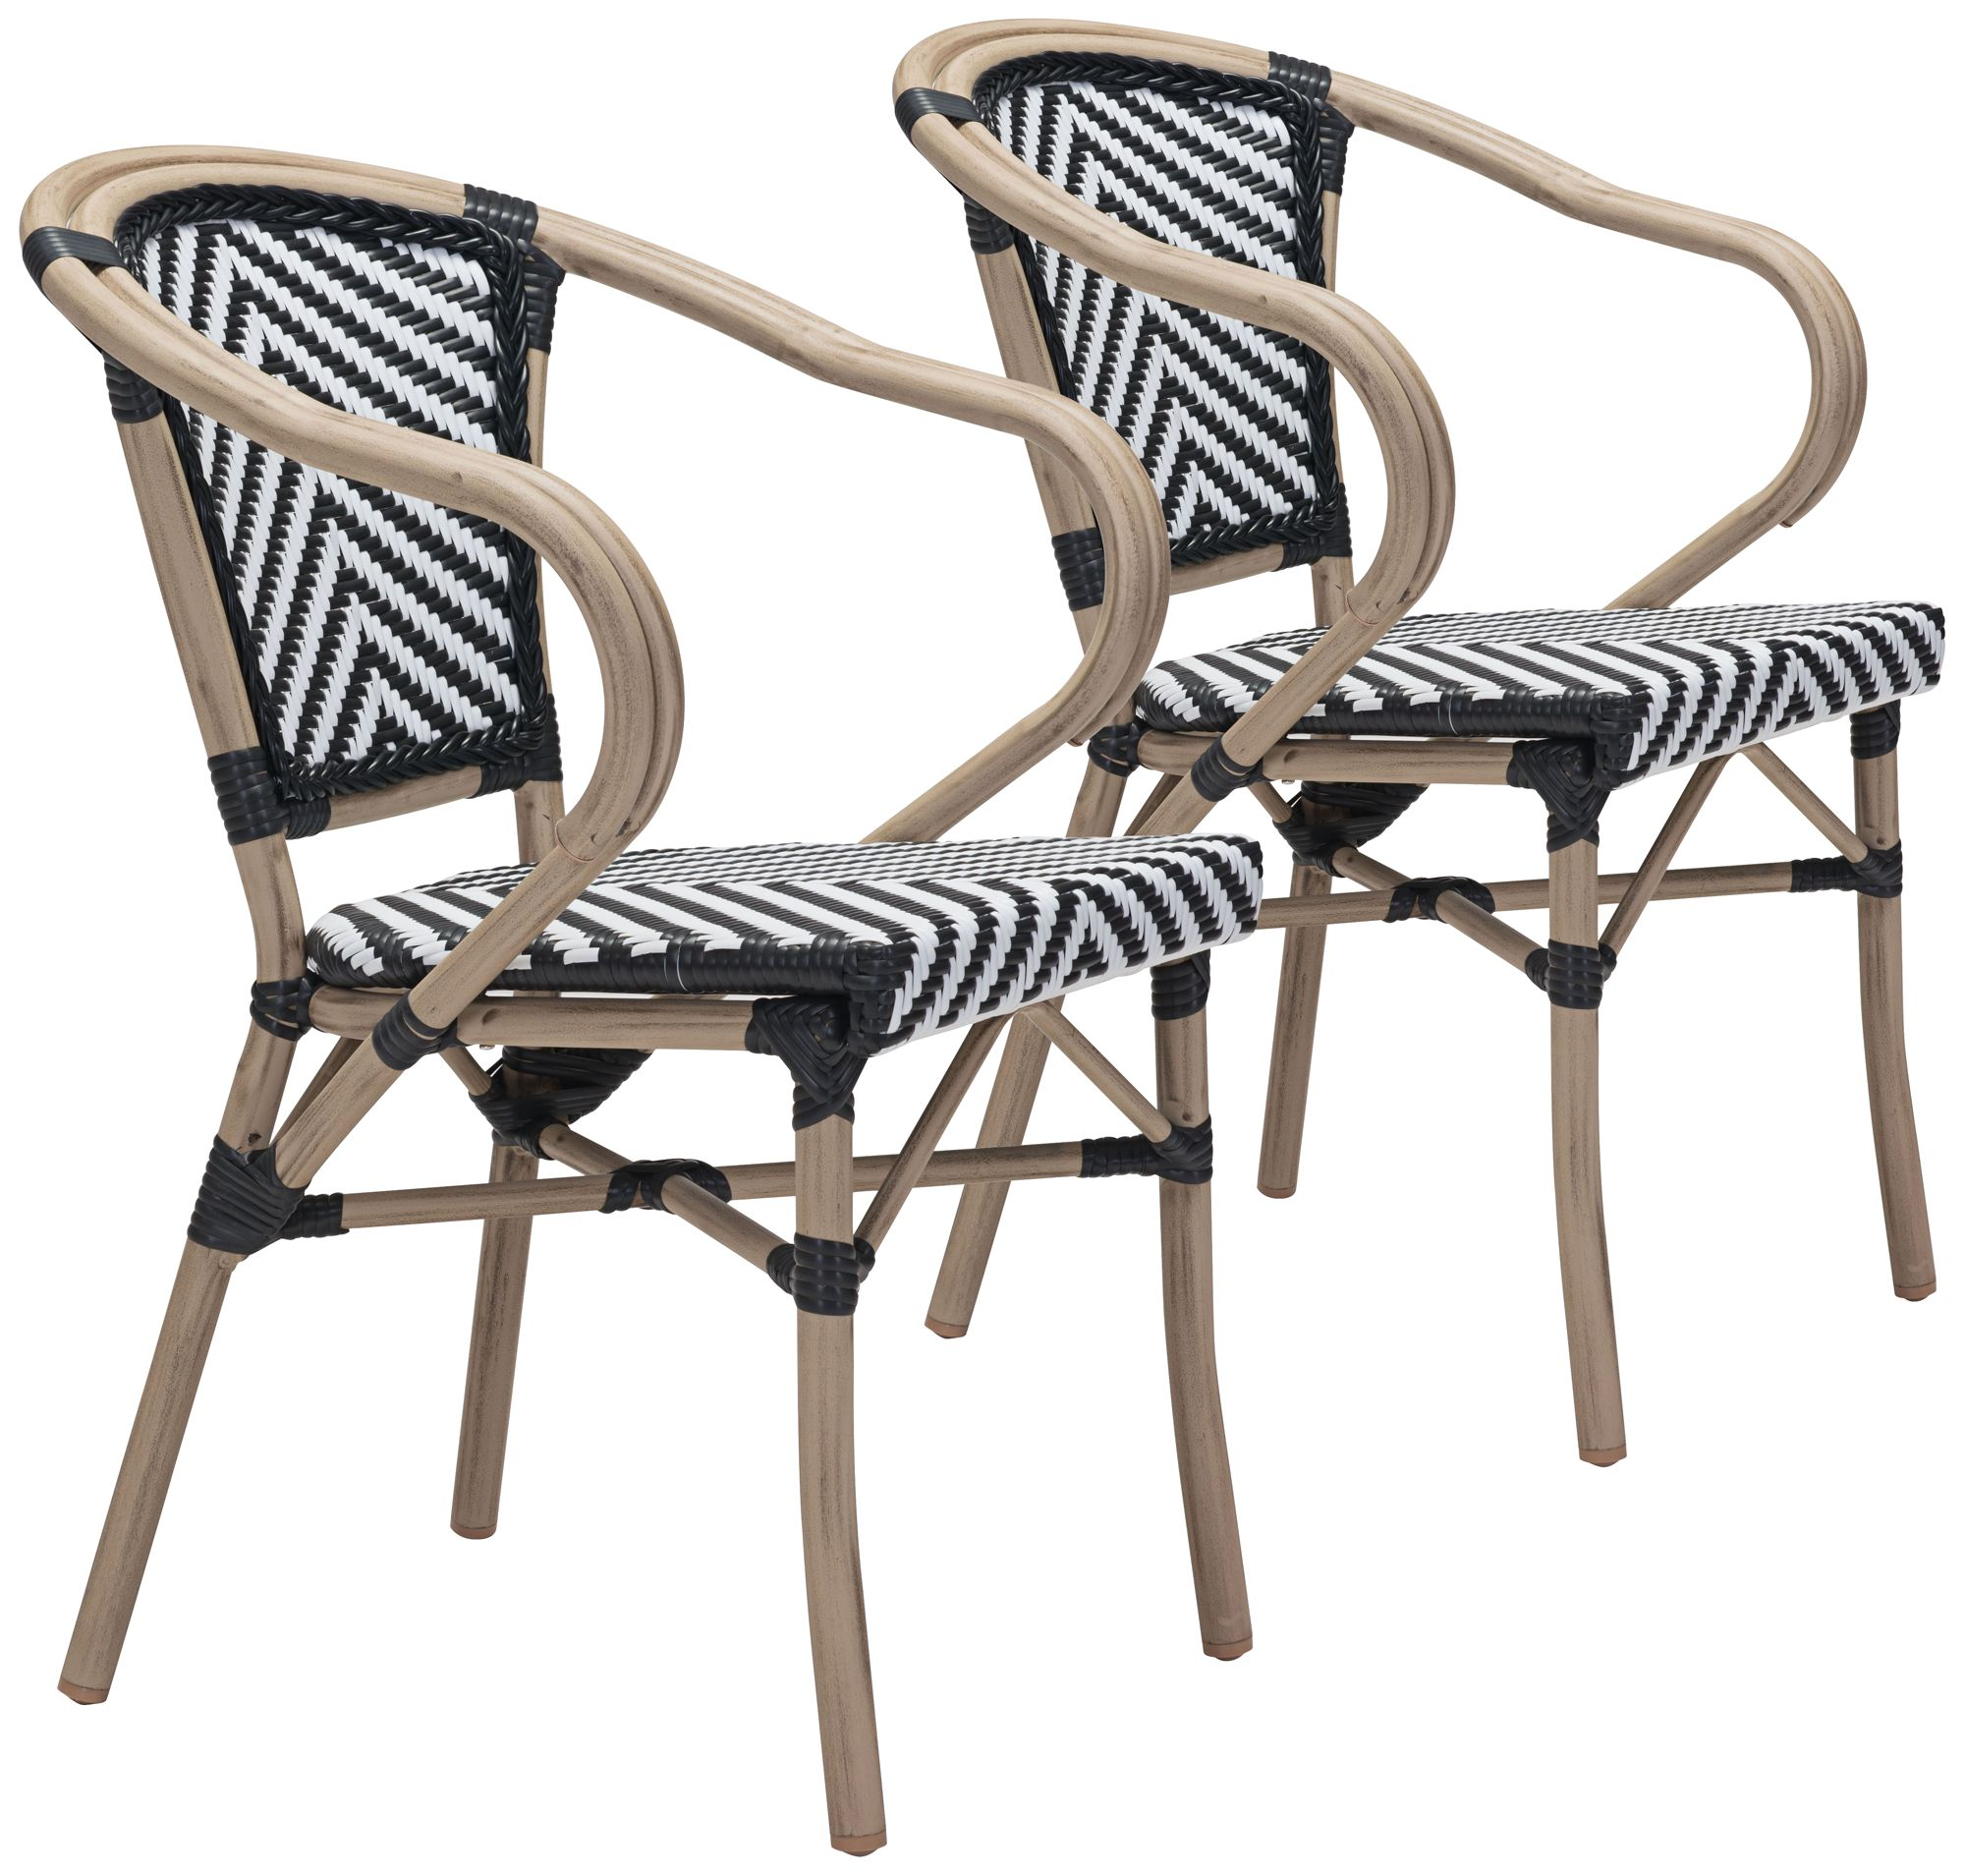 metal outdoor chair beach with cooler furniture patio sets luxury looks lamps plus zuo paris black and white dining armchair set of 2